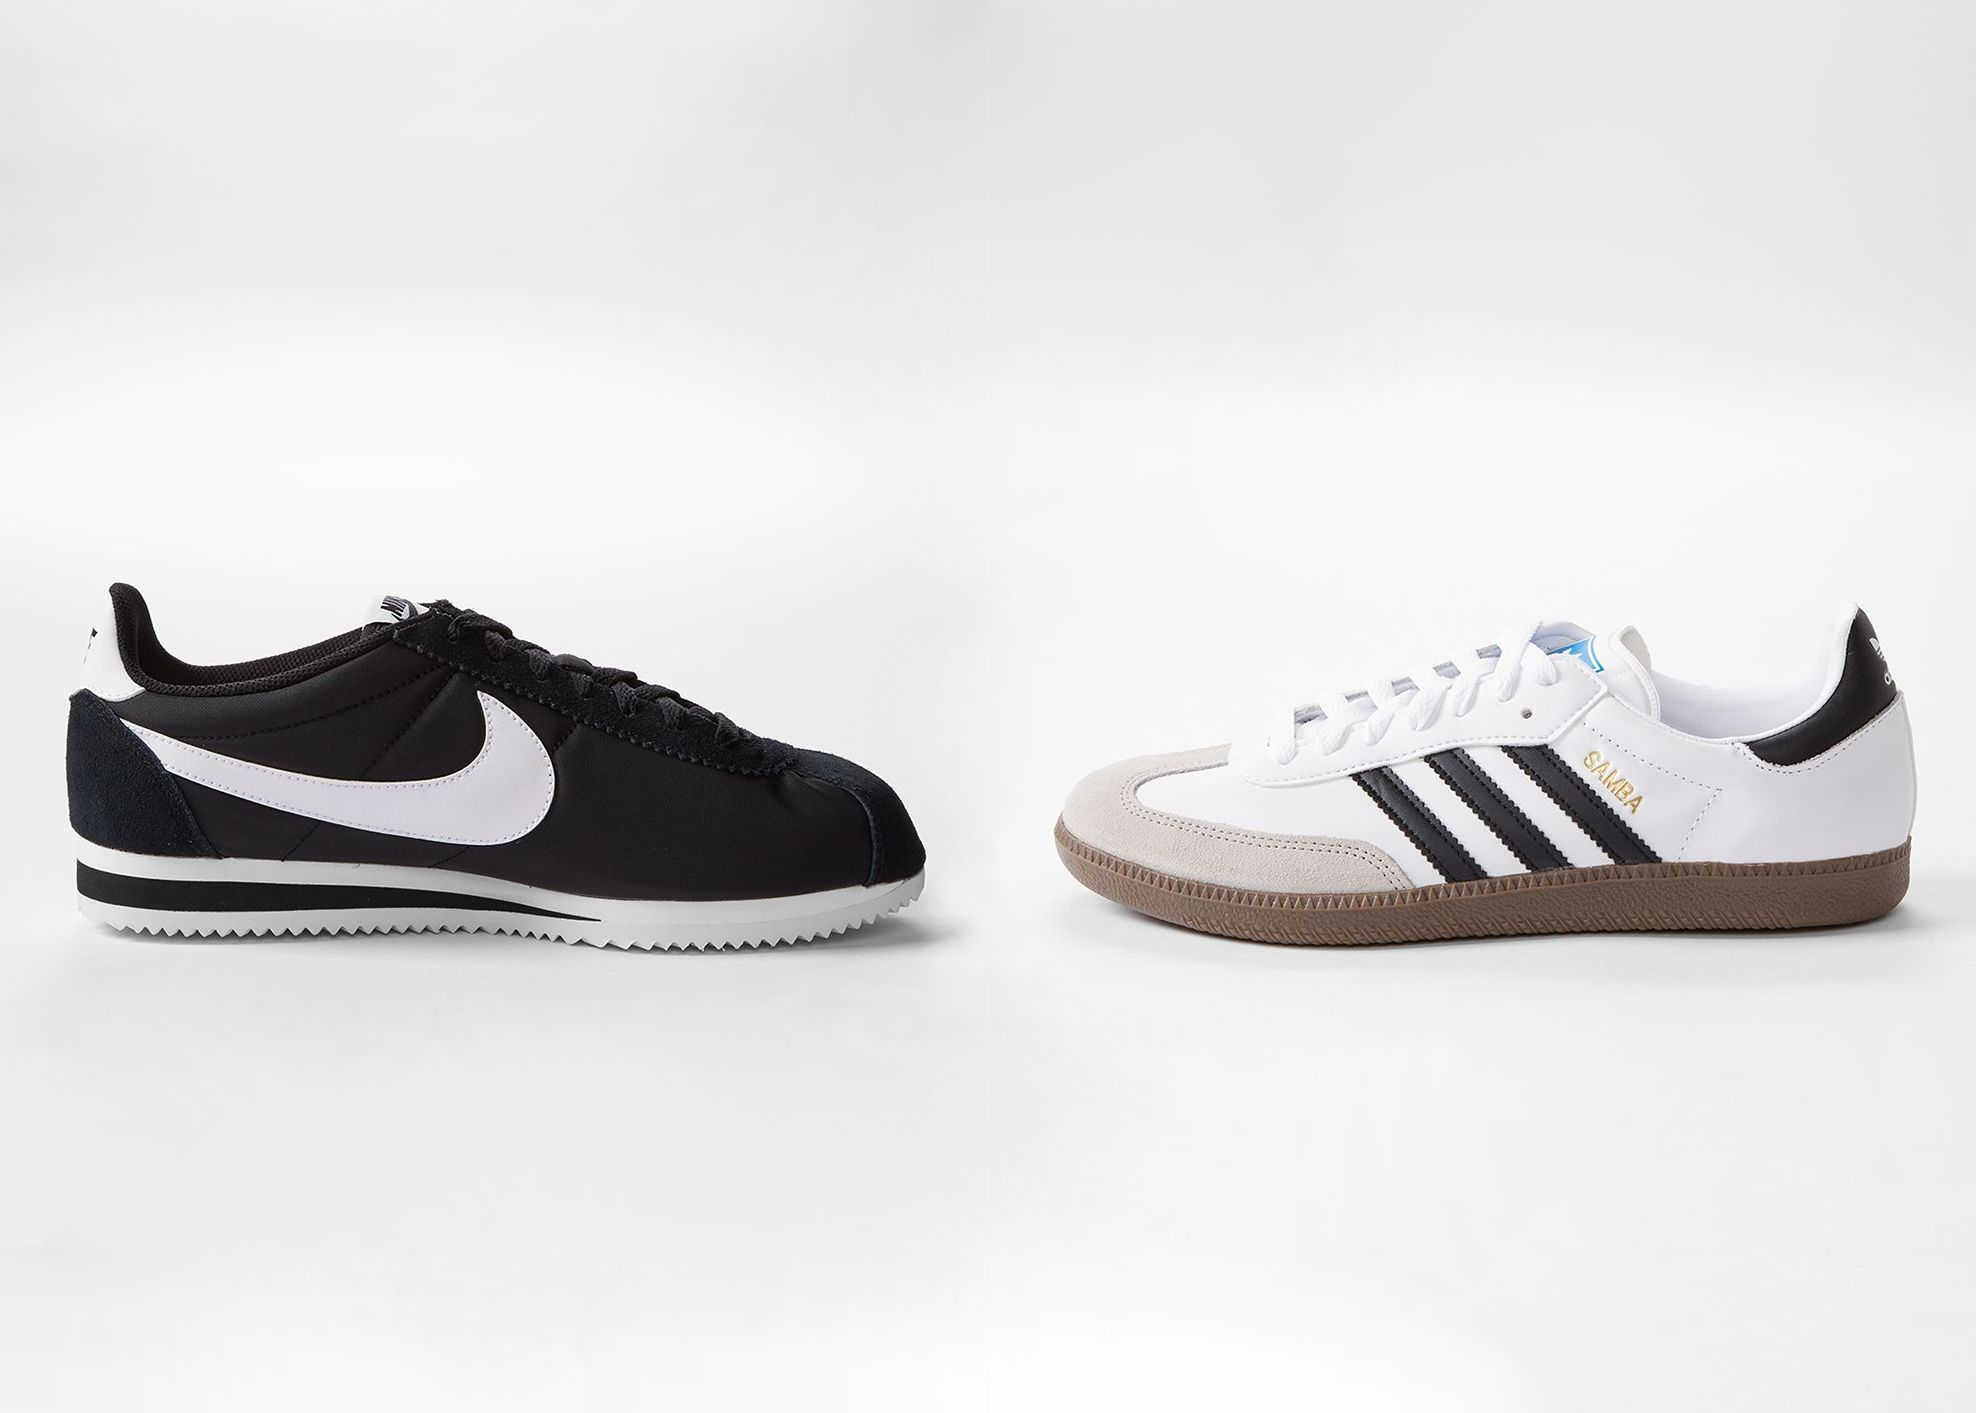 nike cortez vs adidas superstar